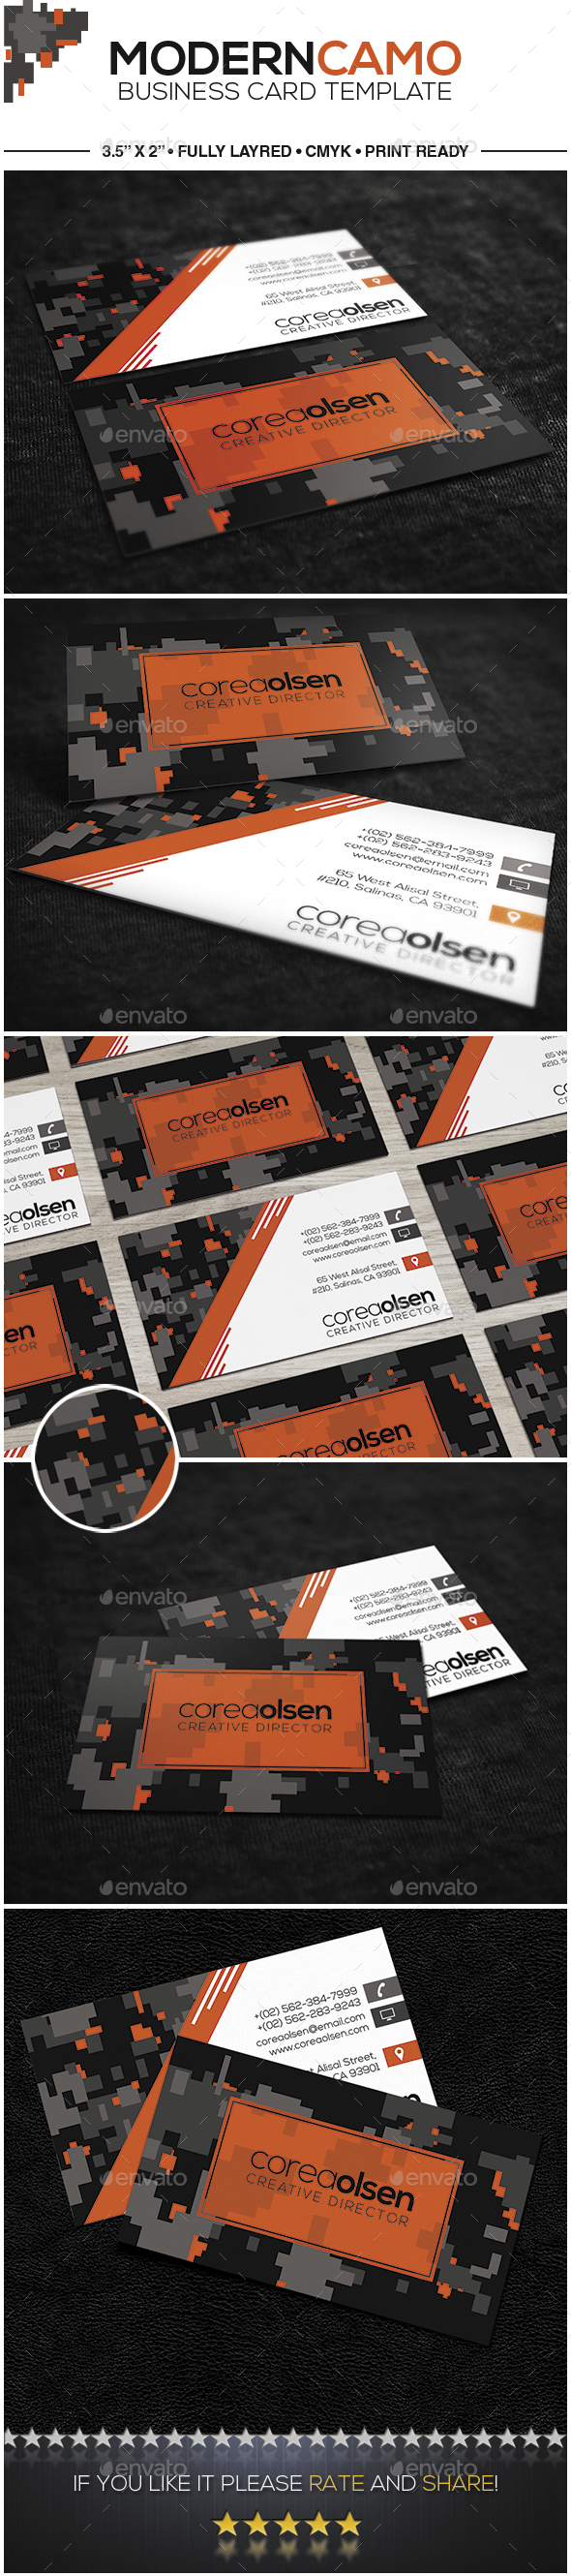 Modern Camouflage Business Card by TodorKolevDesign | GraphicRiver